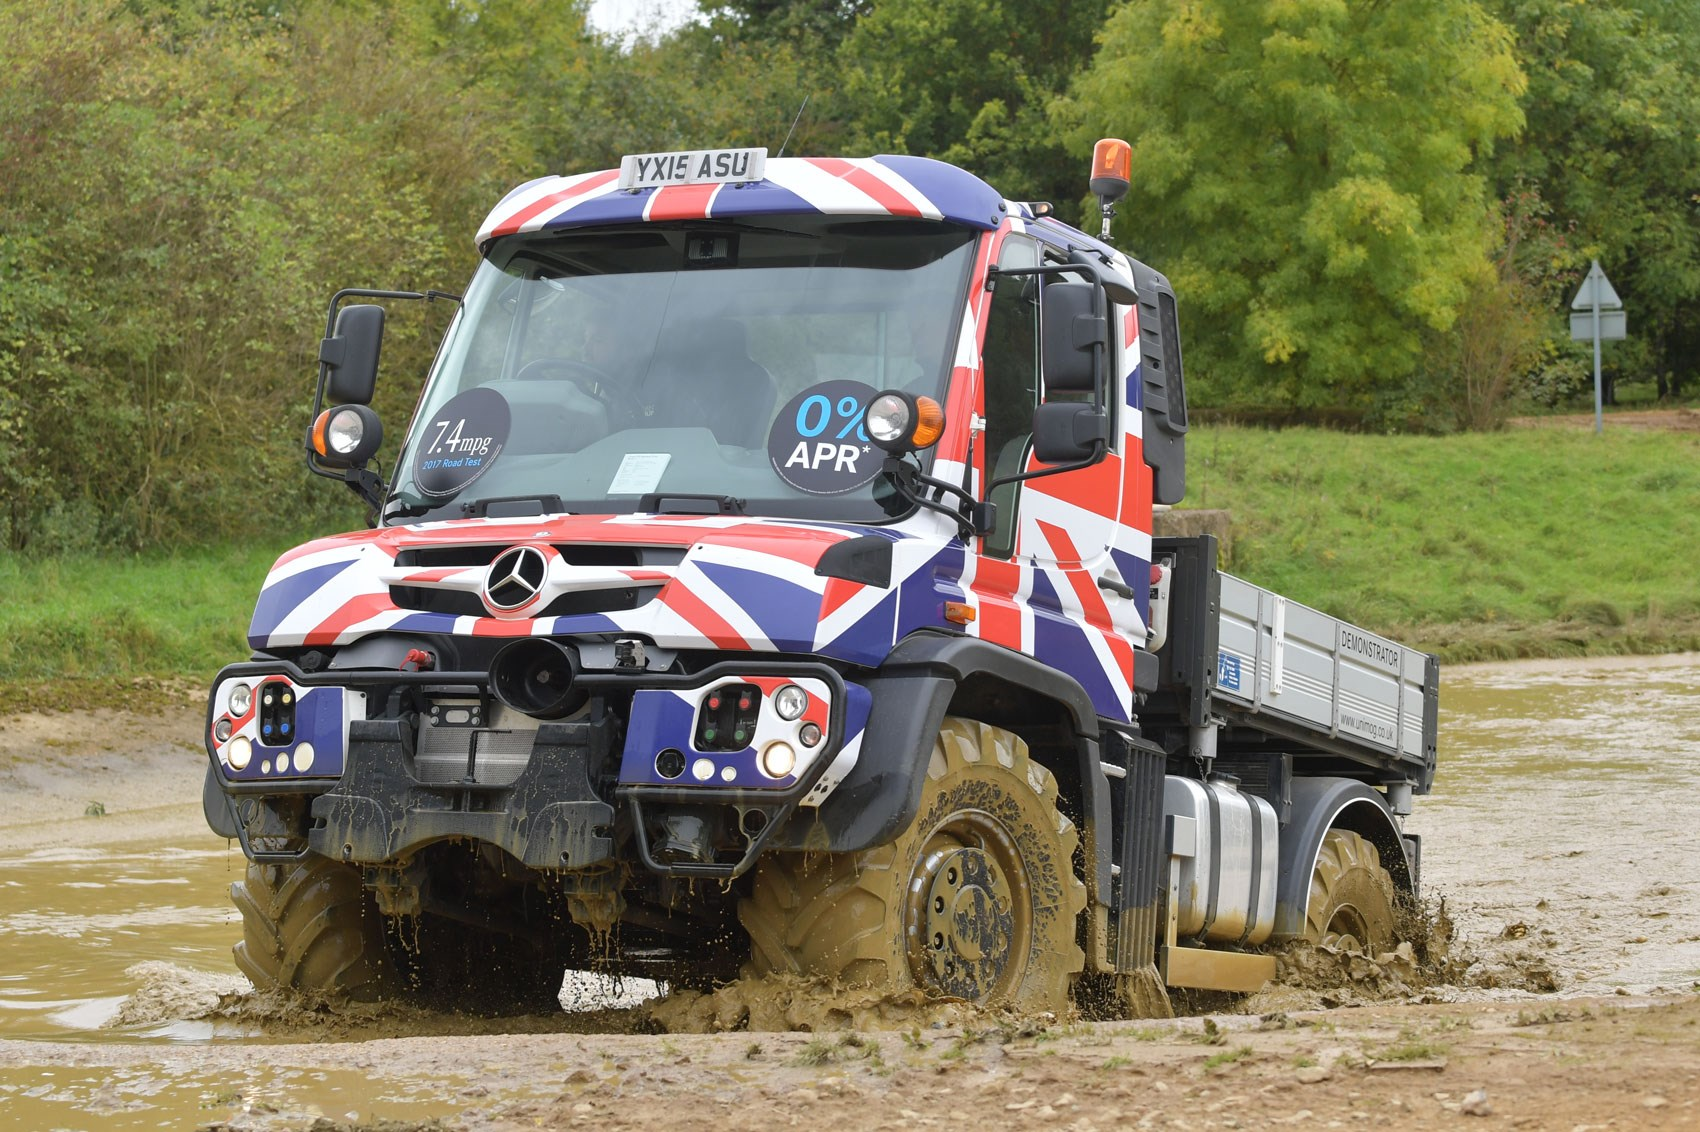 Unimog For Sale >> The emperor of SUVs: Mercedes-Benz Unimog review | CAR Magazine